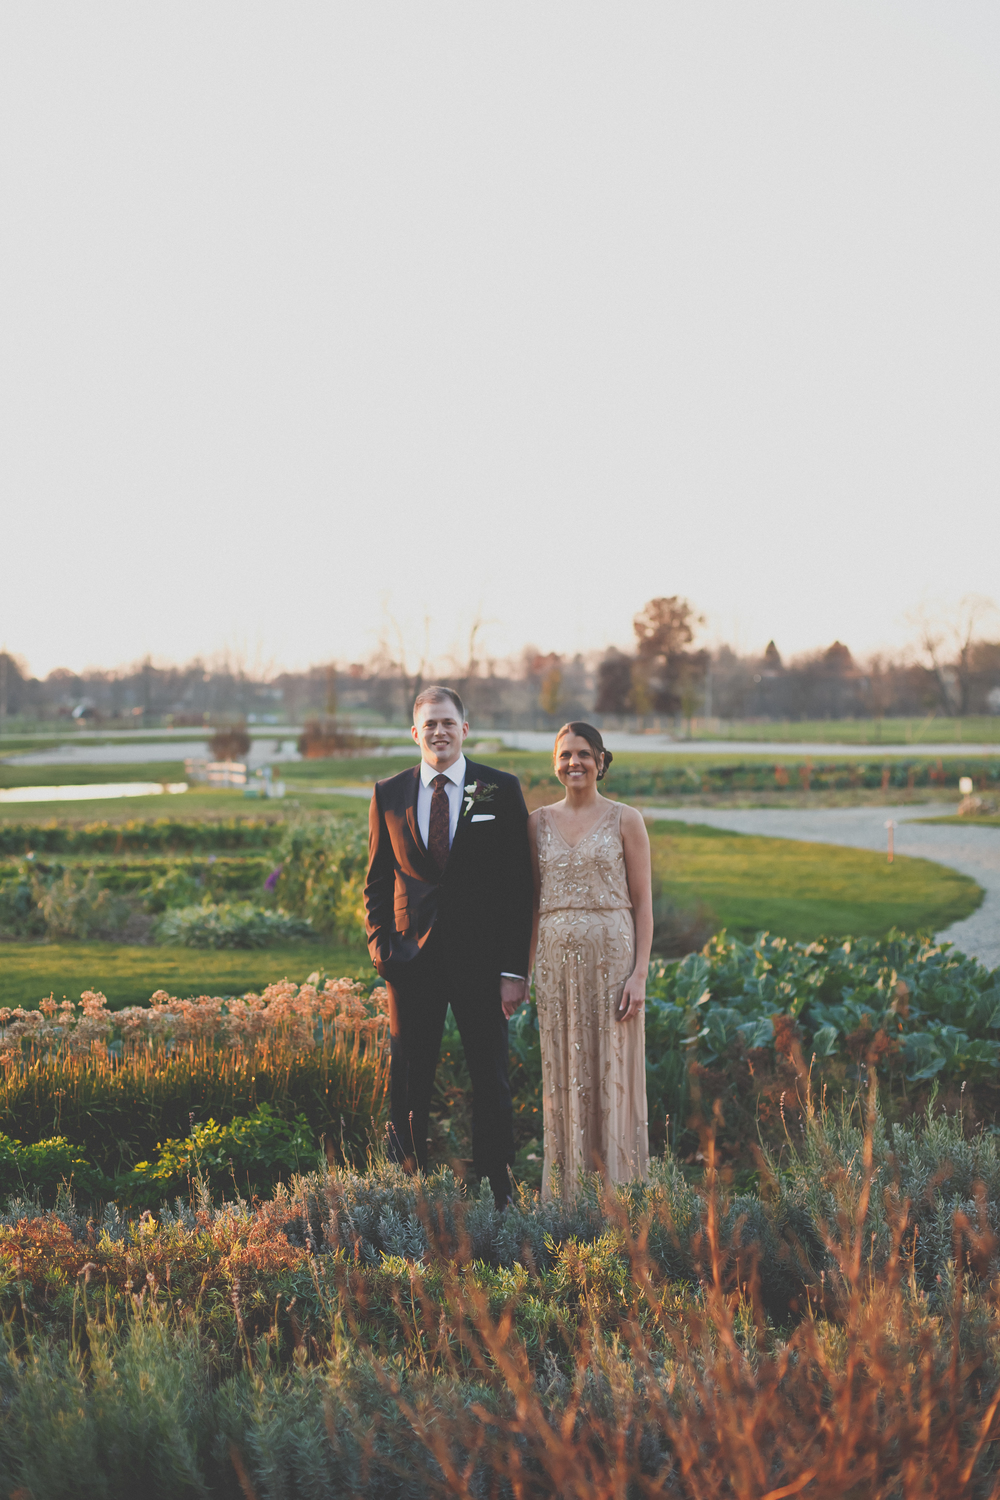 Zingerman's Cornman Farm Intimate Wedding - Sadie and Justin